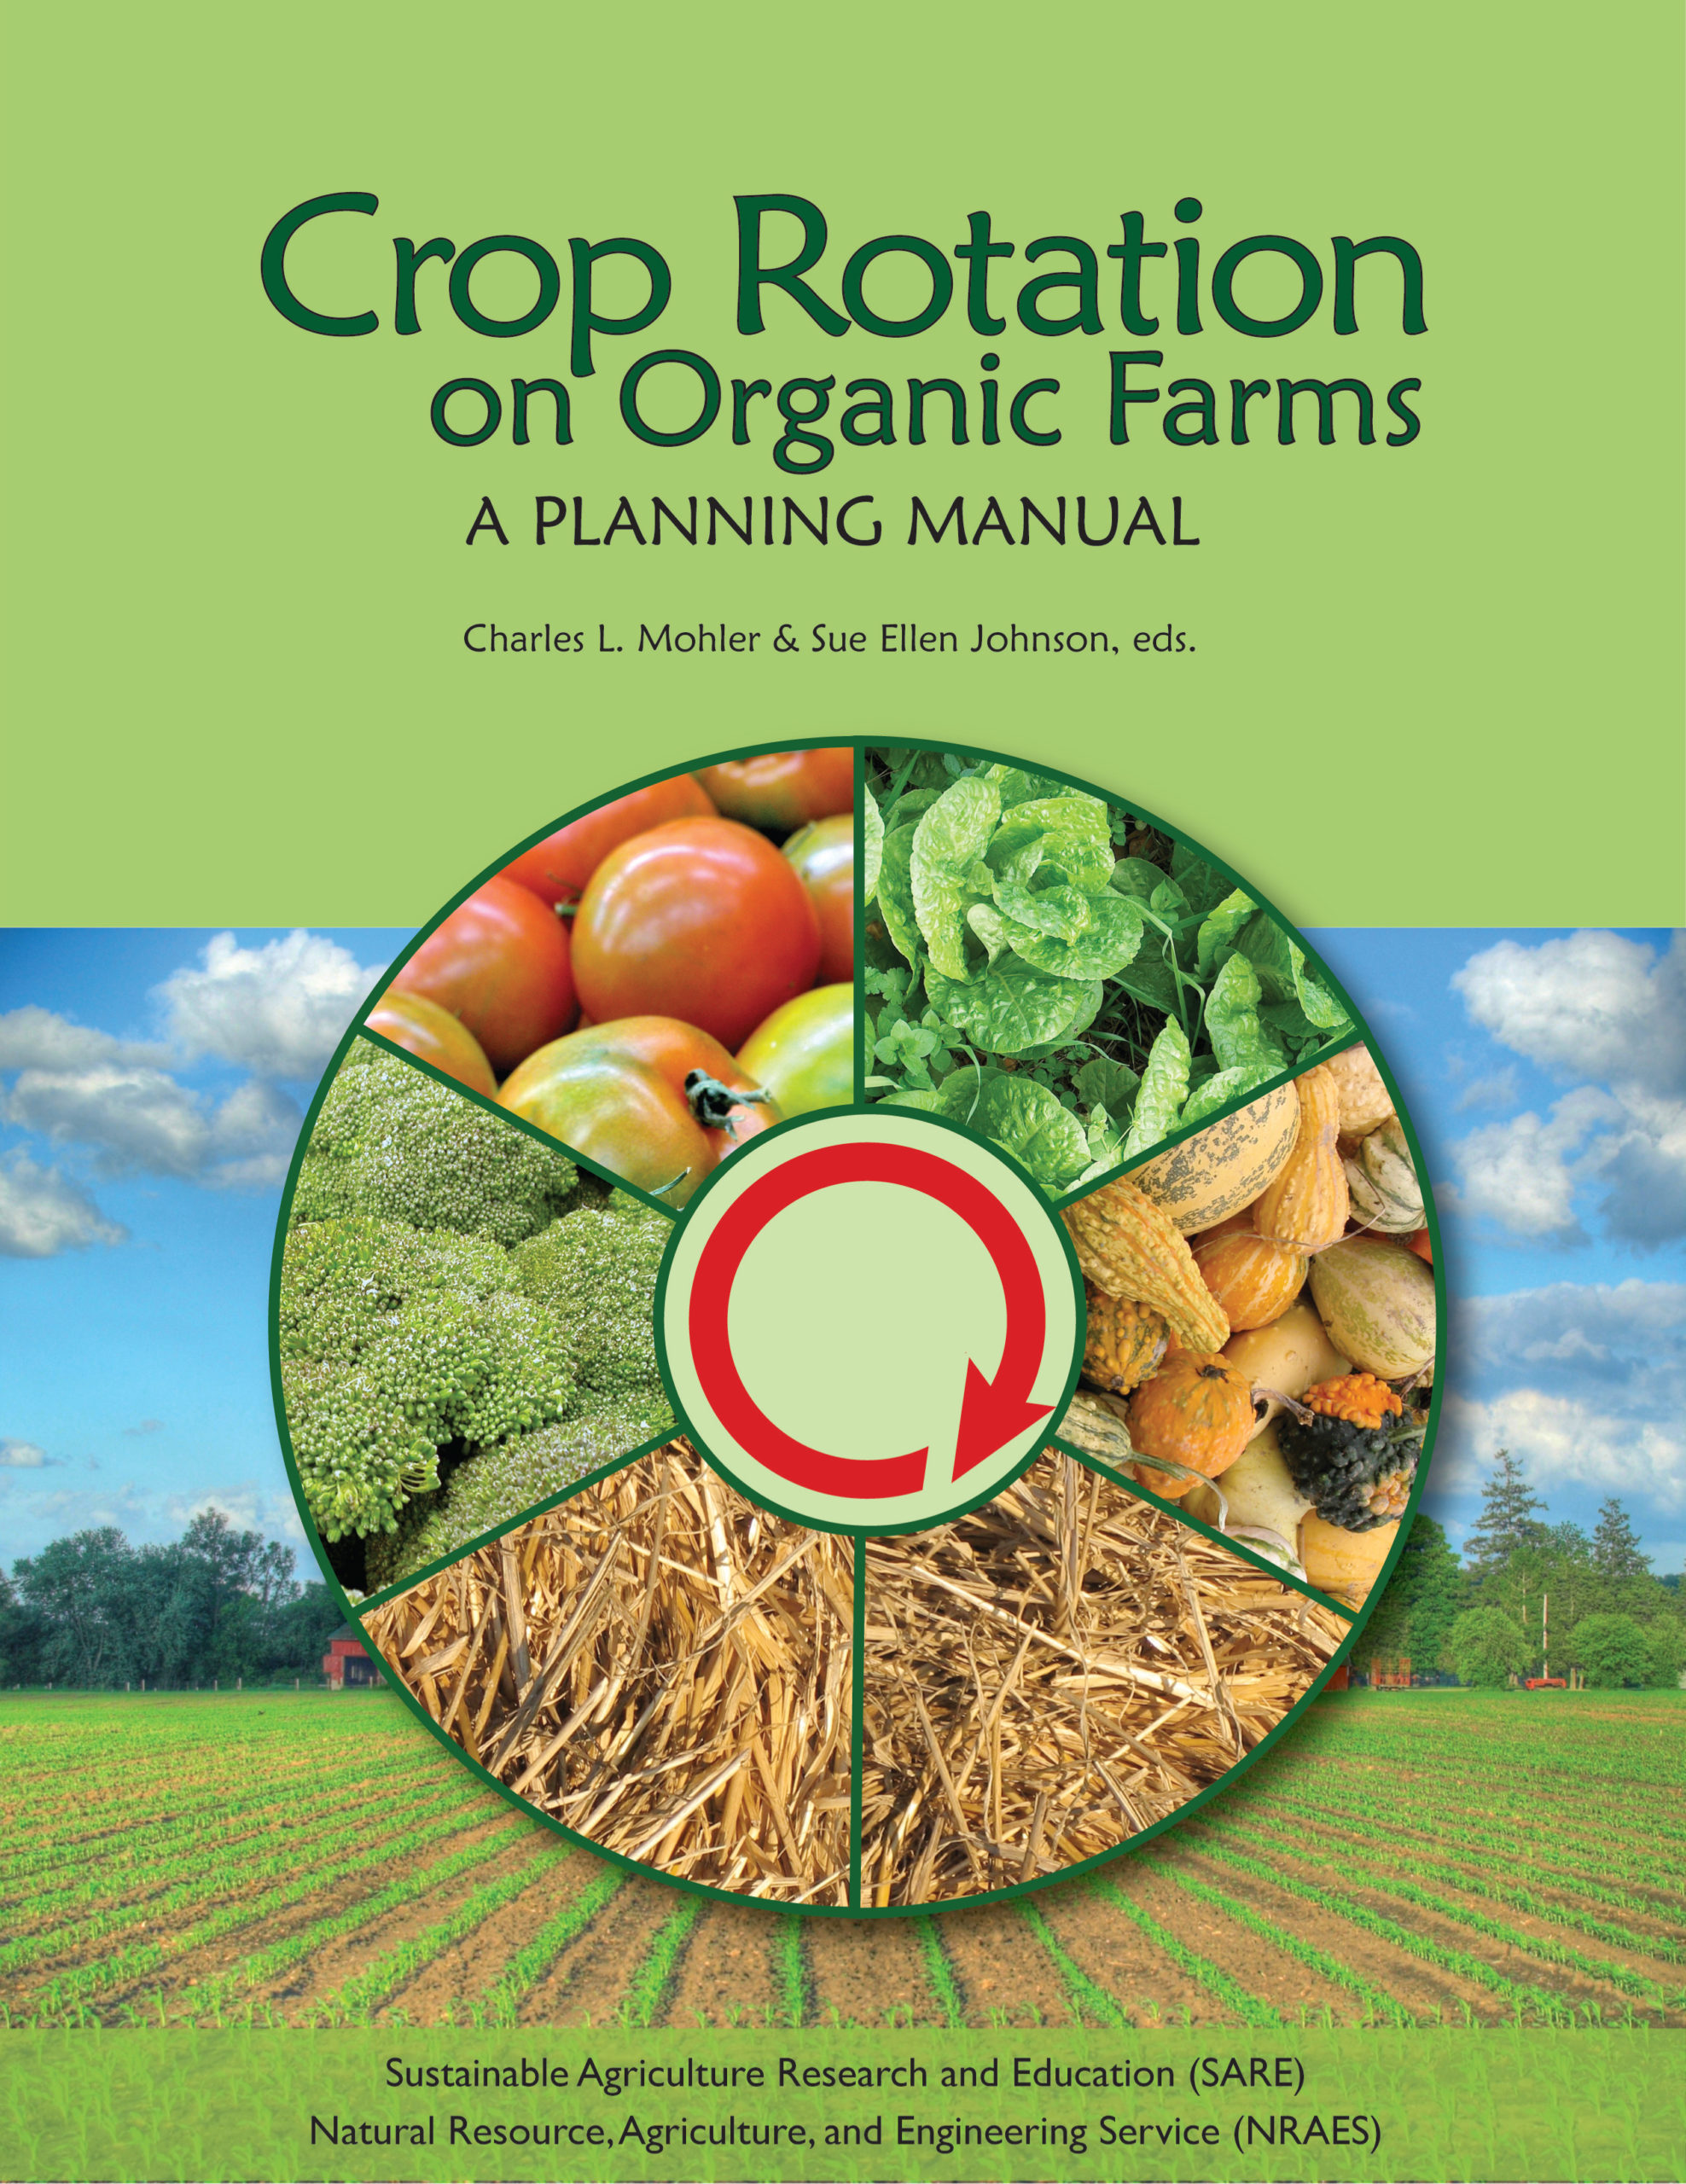 Crop Rotation Planning Manual